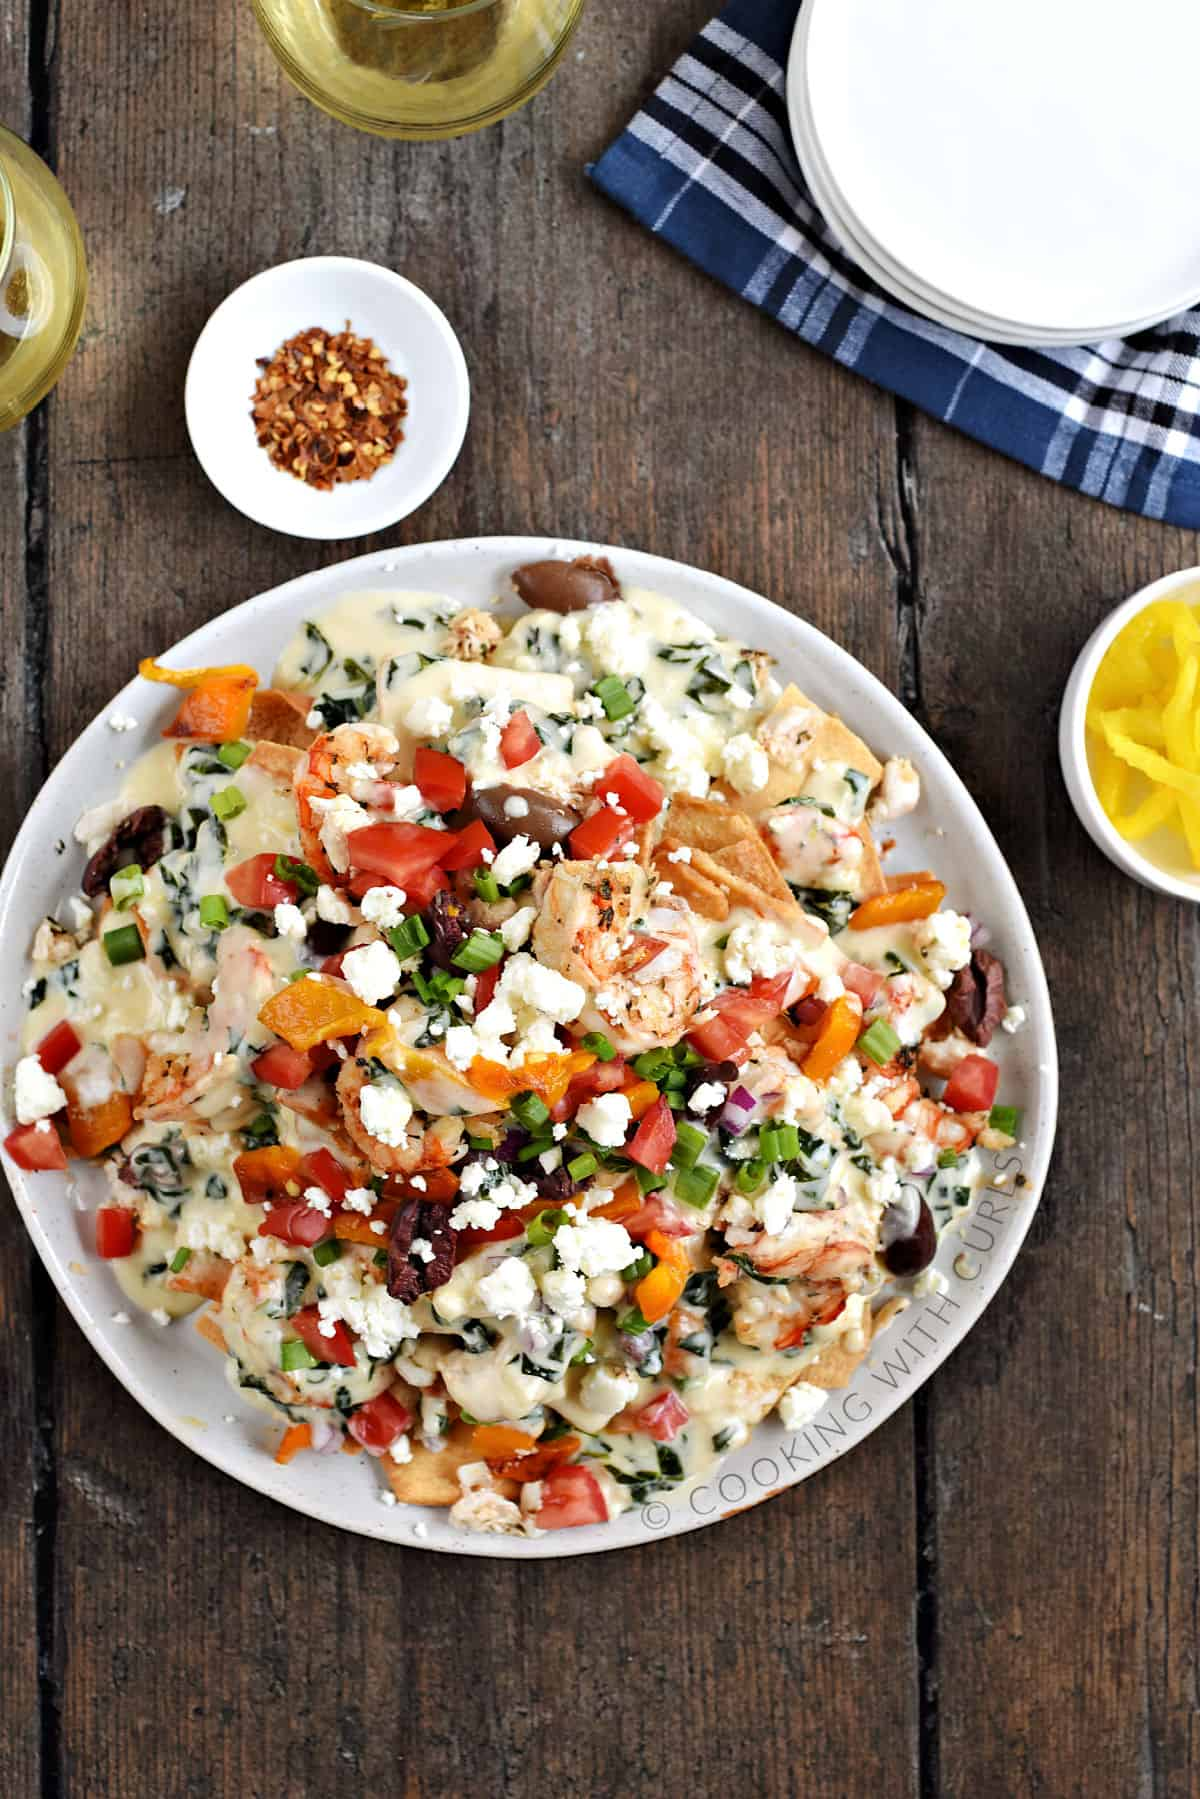 Looking down on a large plate of Greek Seafood Nachos with two glasses of white wine, a bowl of crushed red pepper, and a bowl of banana peppers in the background.